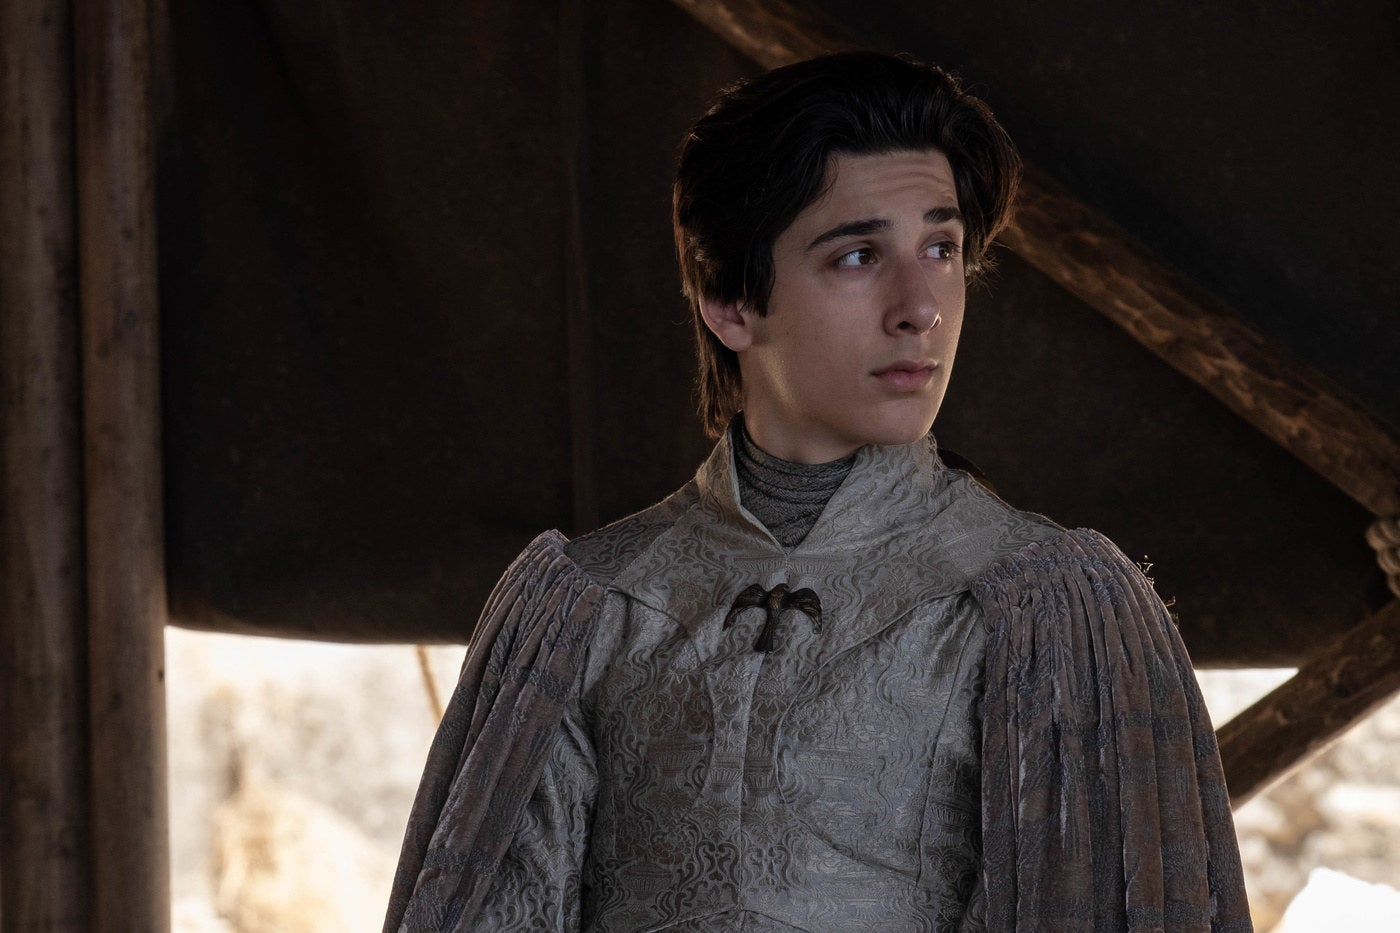 The Robin Arryn Actor In Game Of Thrones Is Humbled By All The Glow-Up Love